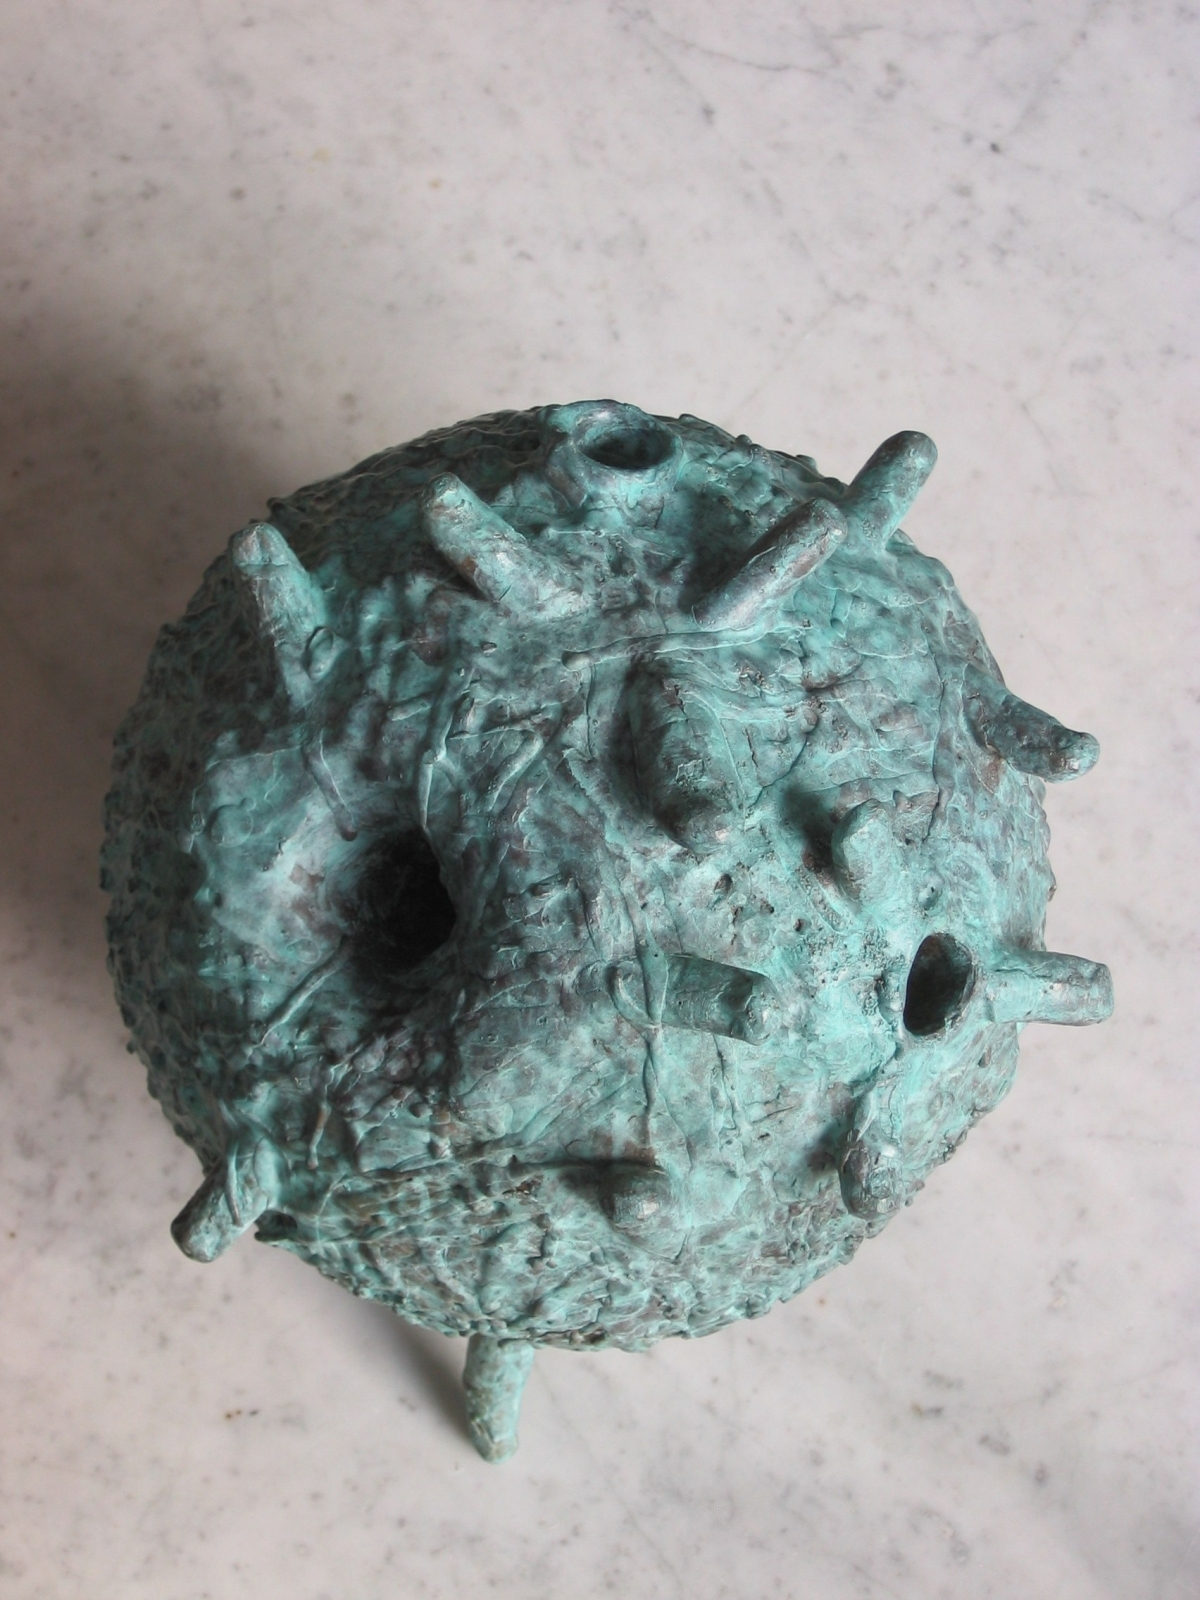 Microcosm 2, 2007, Cast based on artist's fingers, Bronze, 15 in. in circumference